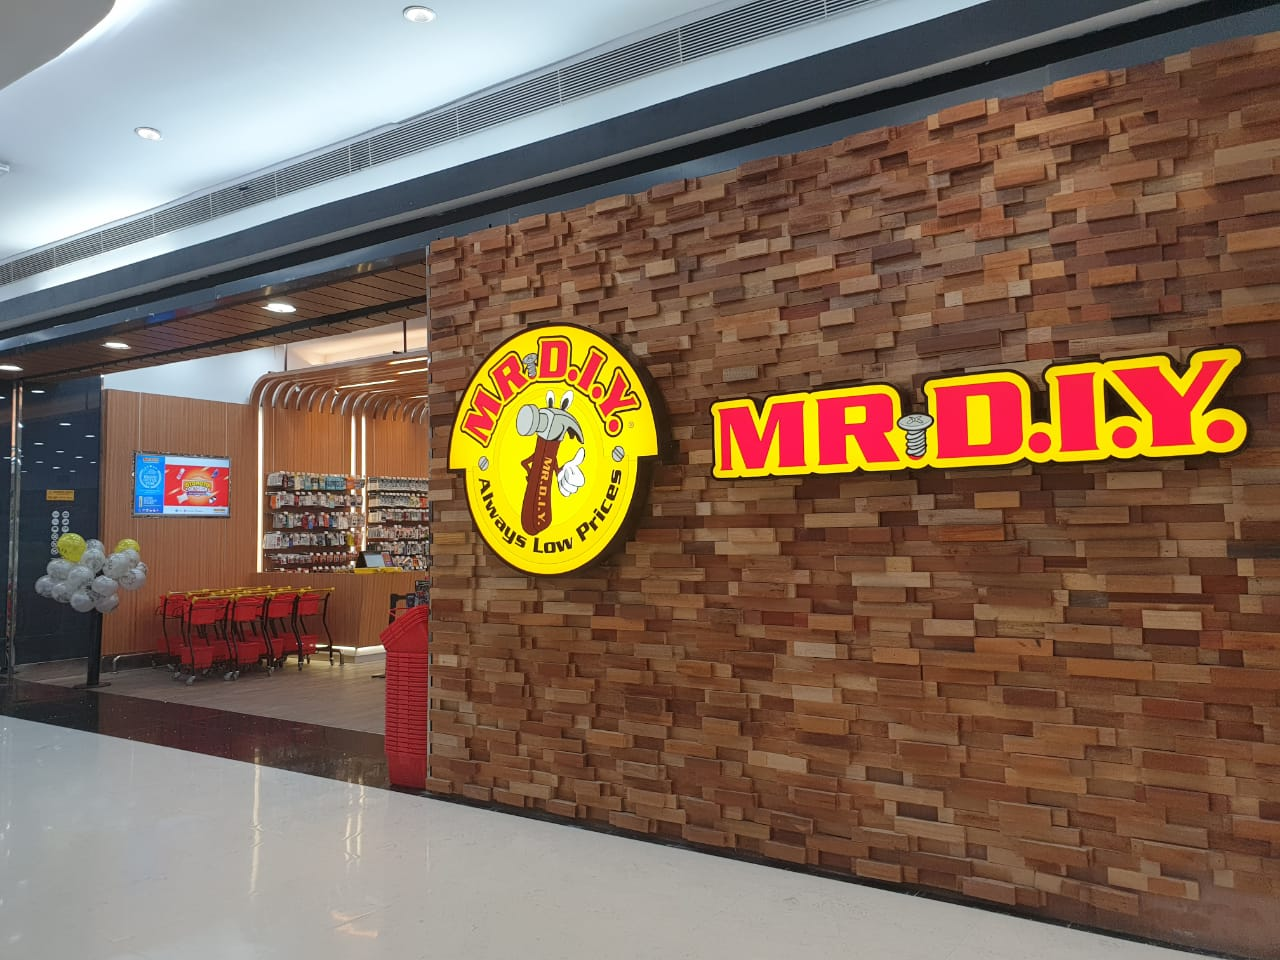 Mr DIY shop front in lippo mall puri st. moritz